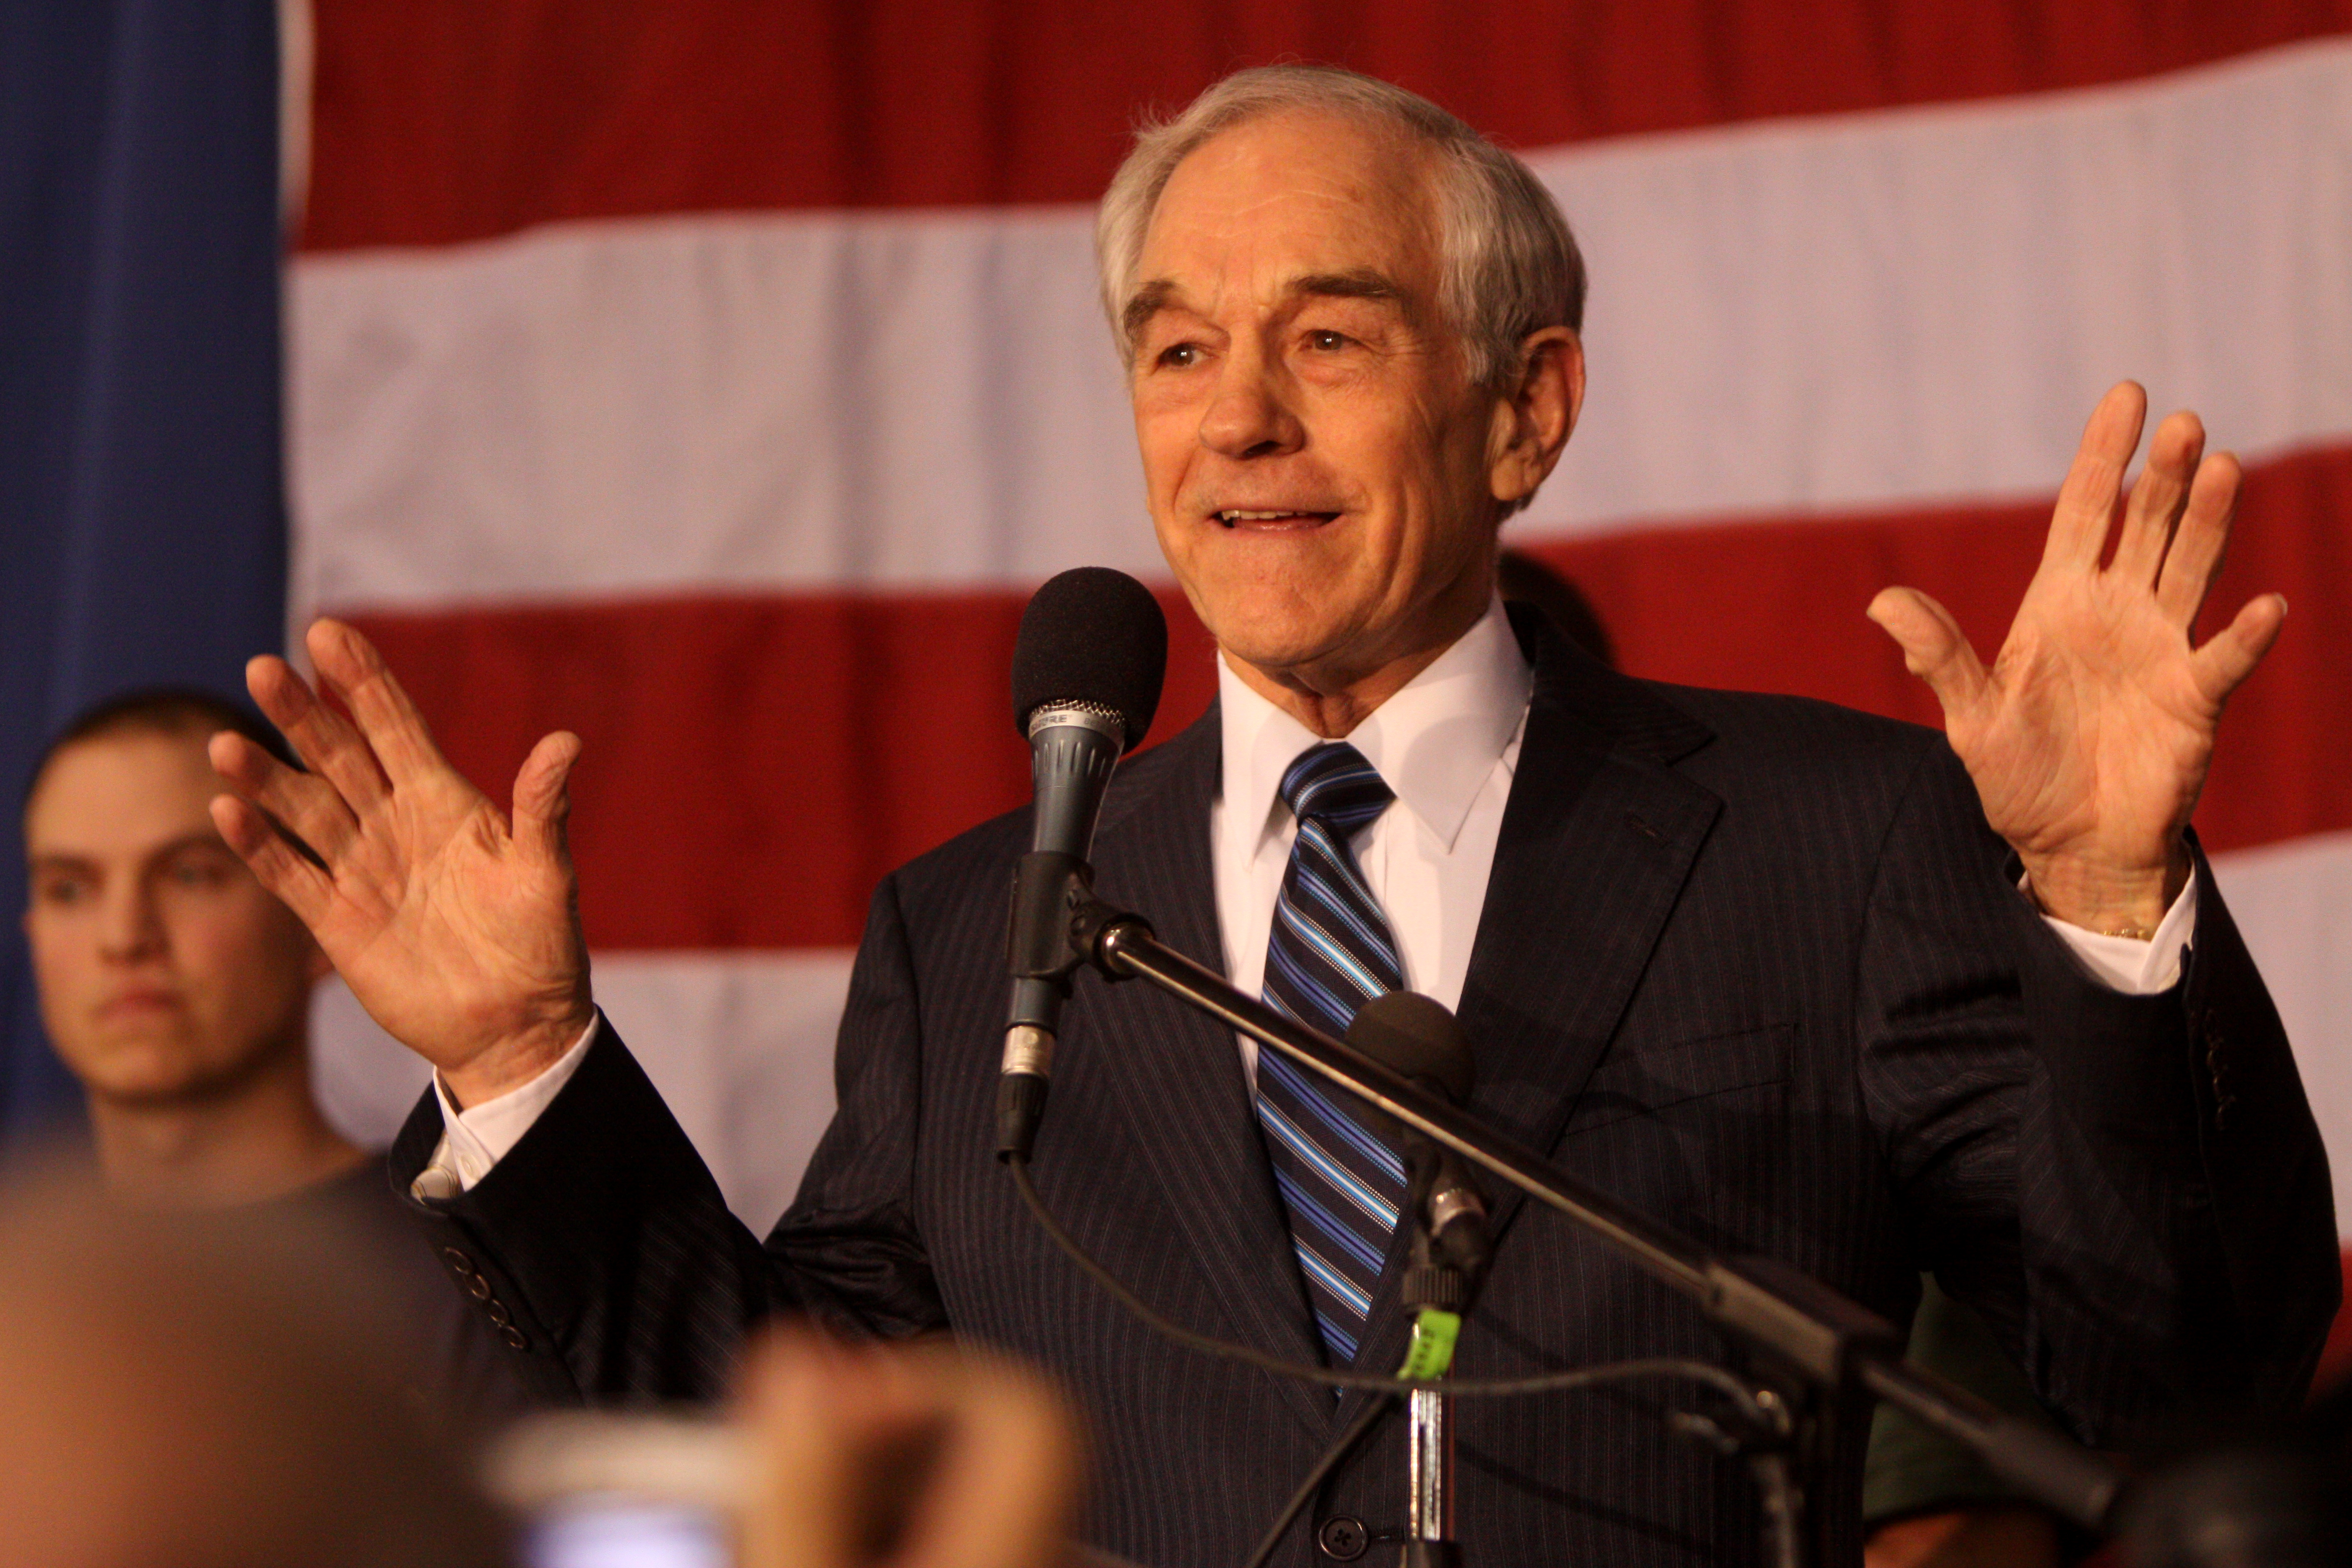 Ron Paul speaking at Veterans' Rally, Des Moines, IA.